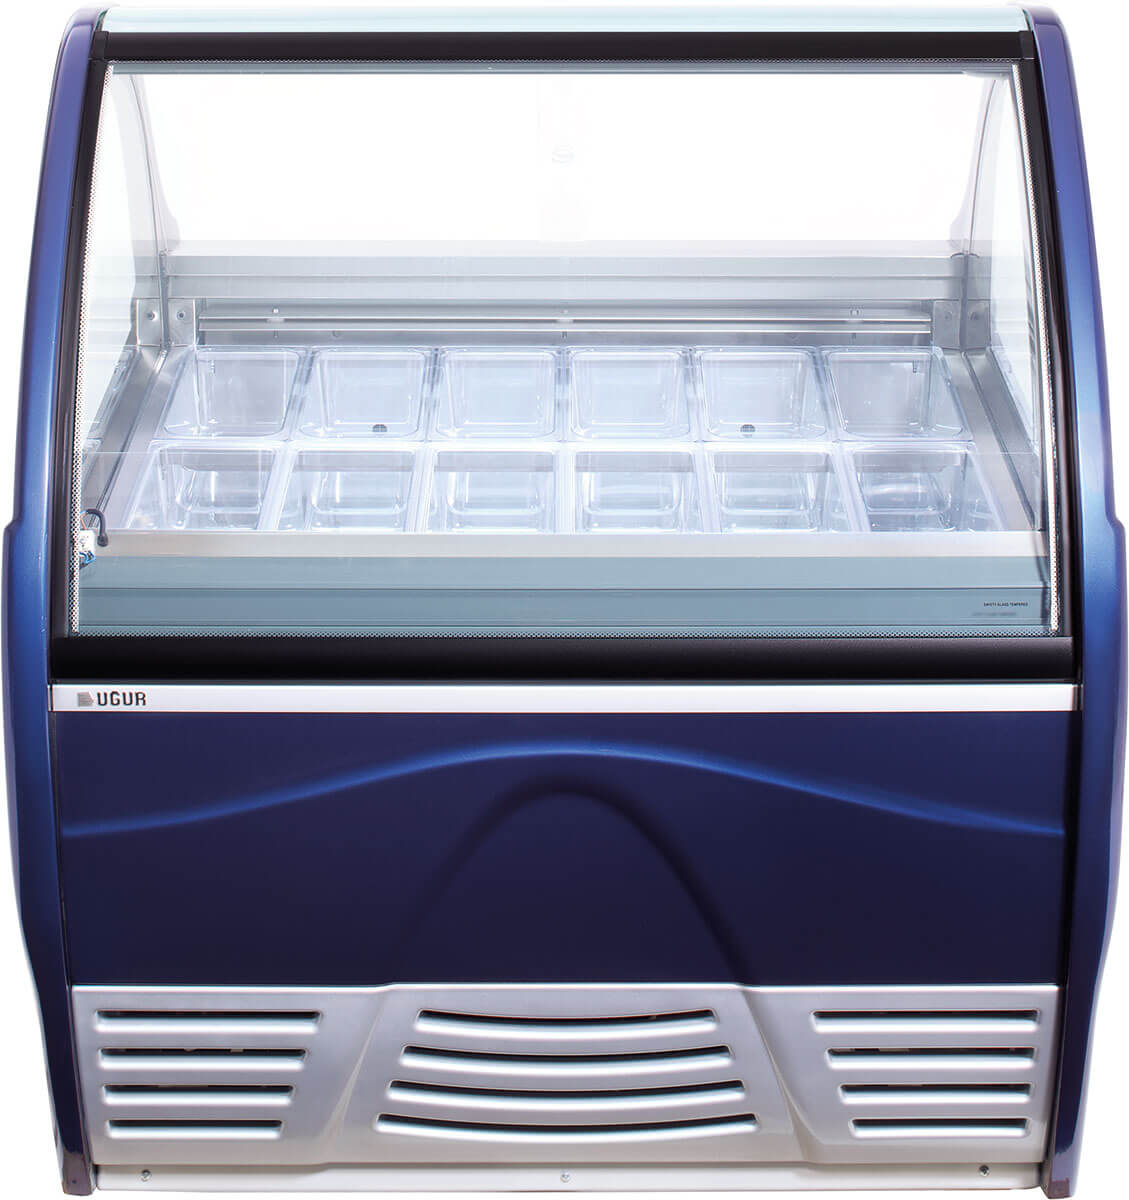 UDR-12-KANUNI-capraz1L-ice-cream-freezer2